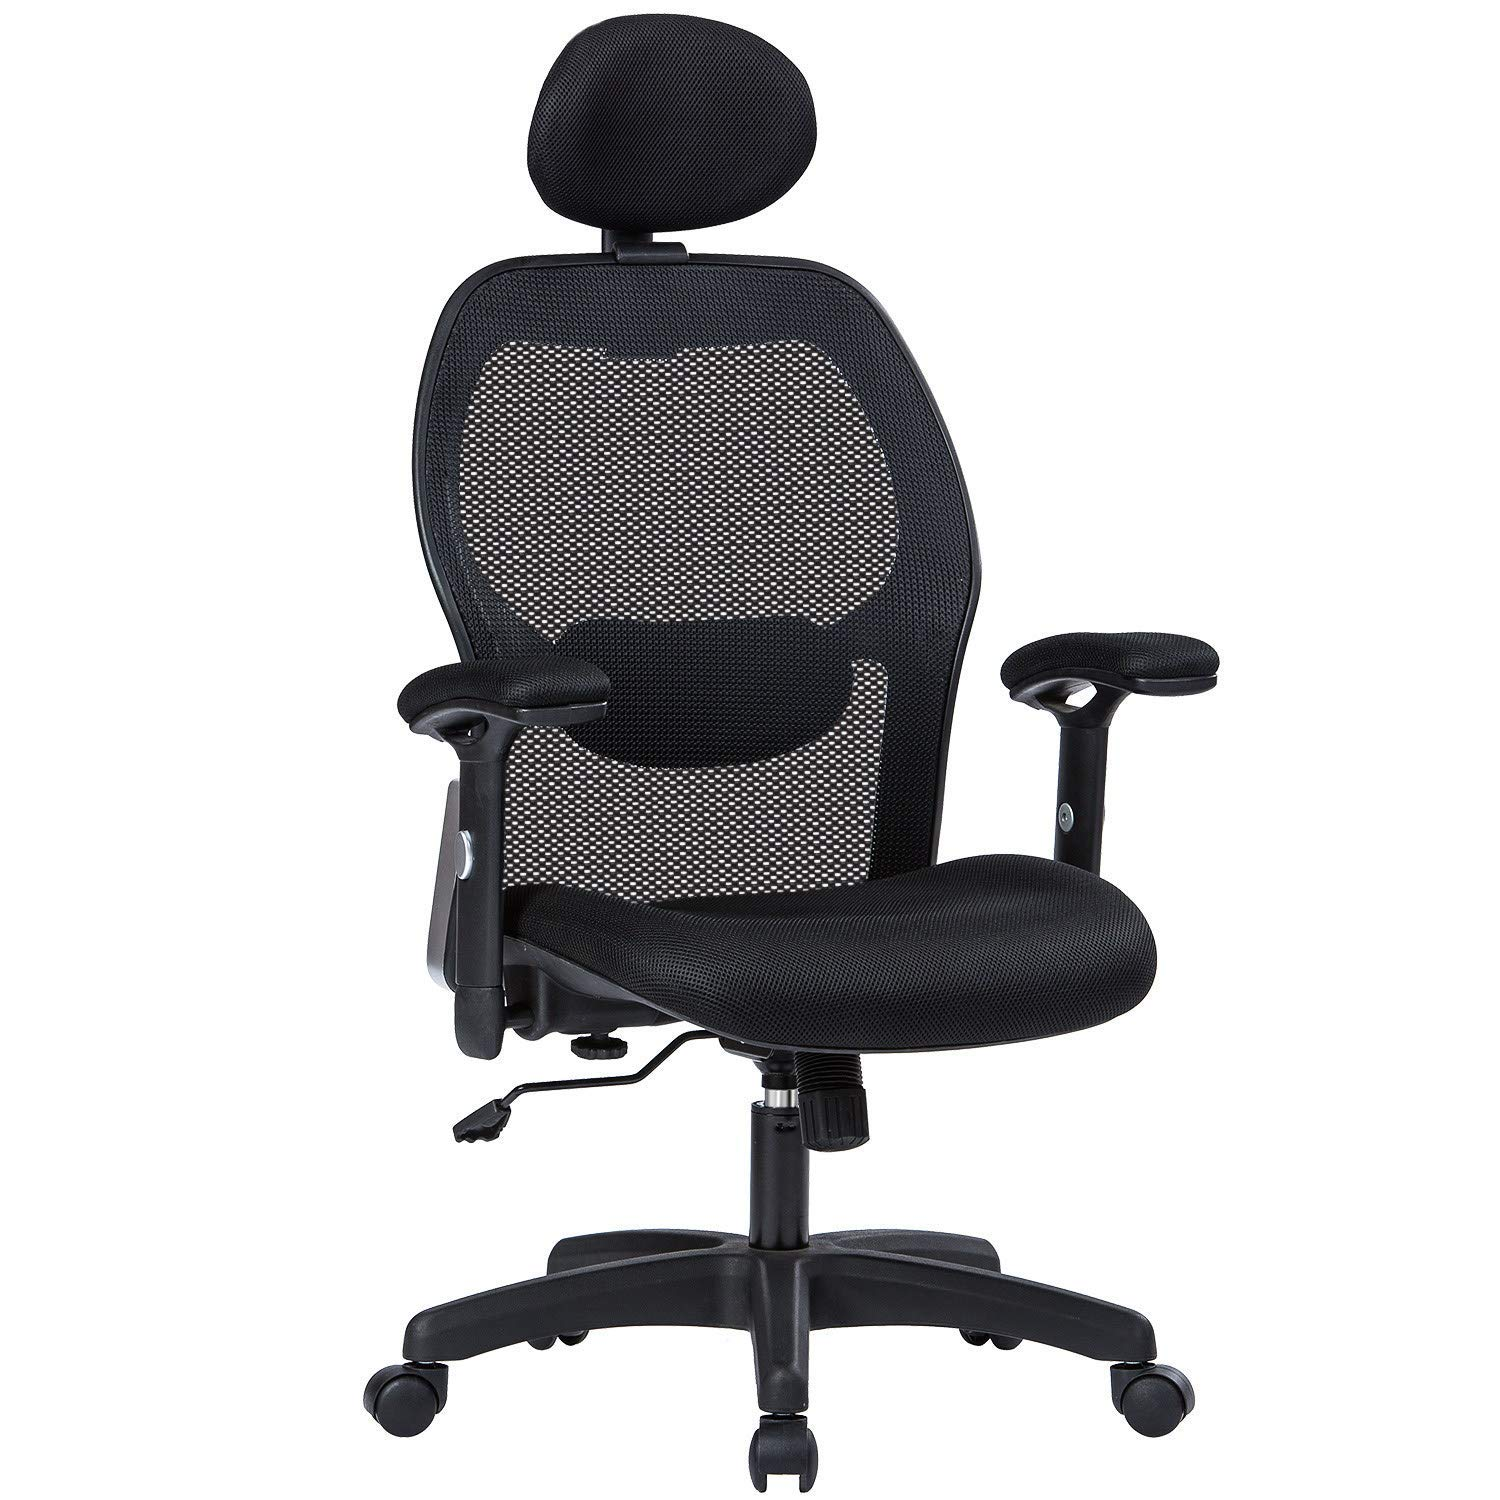 Office Chair Armrest Amazon.com : LIANFENG Ergonomic Office Chair, High Back Executive Swivel  Computer Desk Chair with Adjustable Armrests and Headrest, Back Lumbar  Support, ...